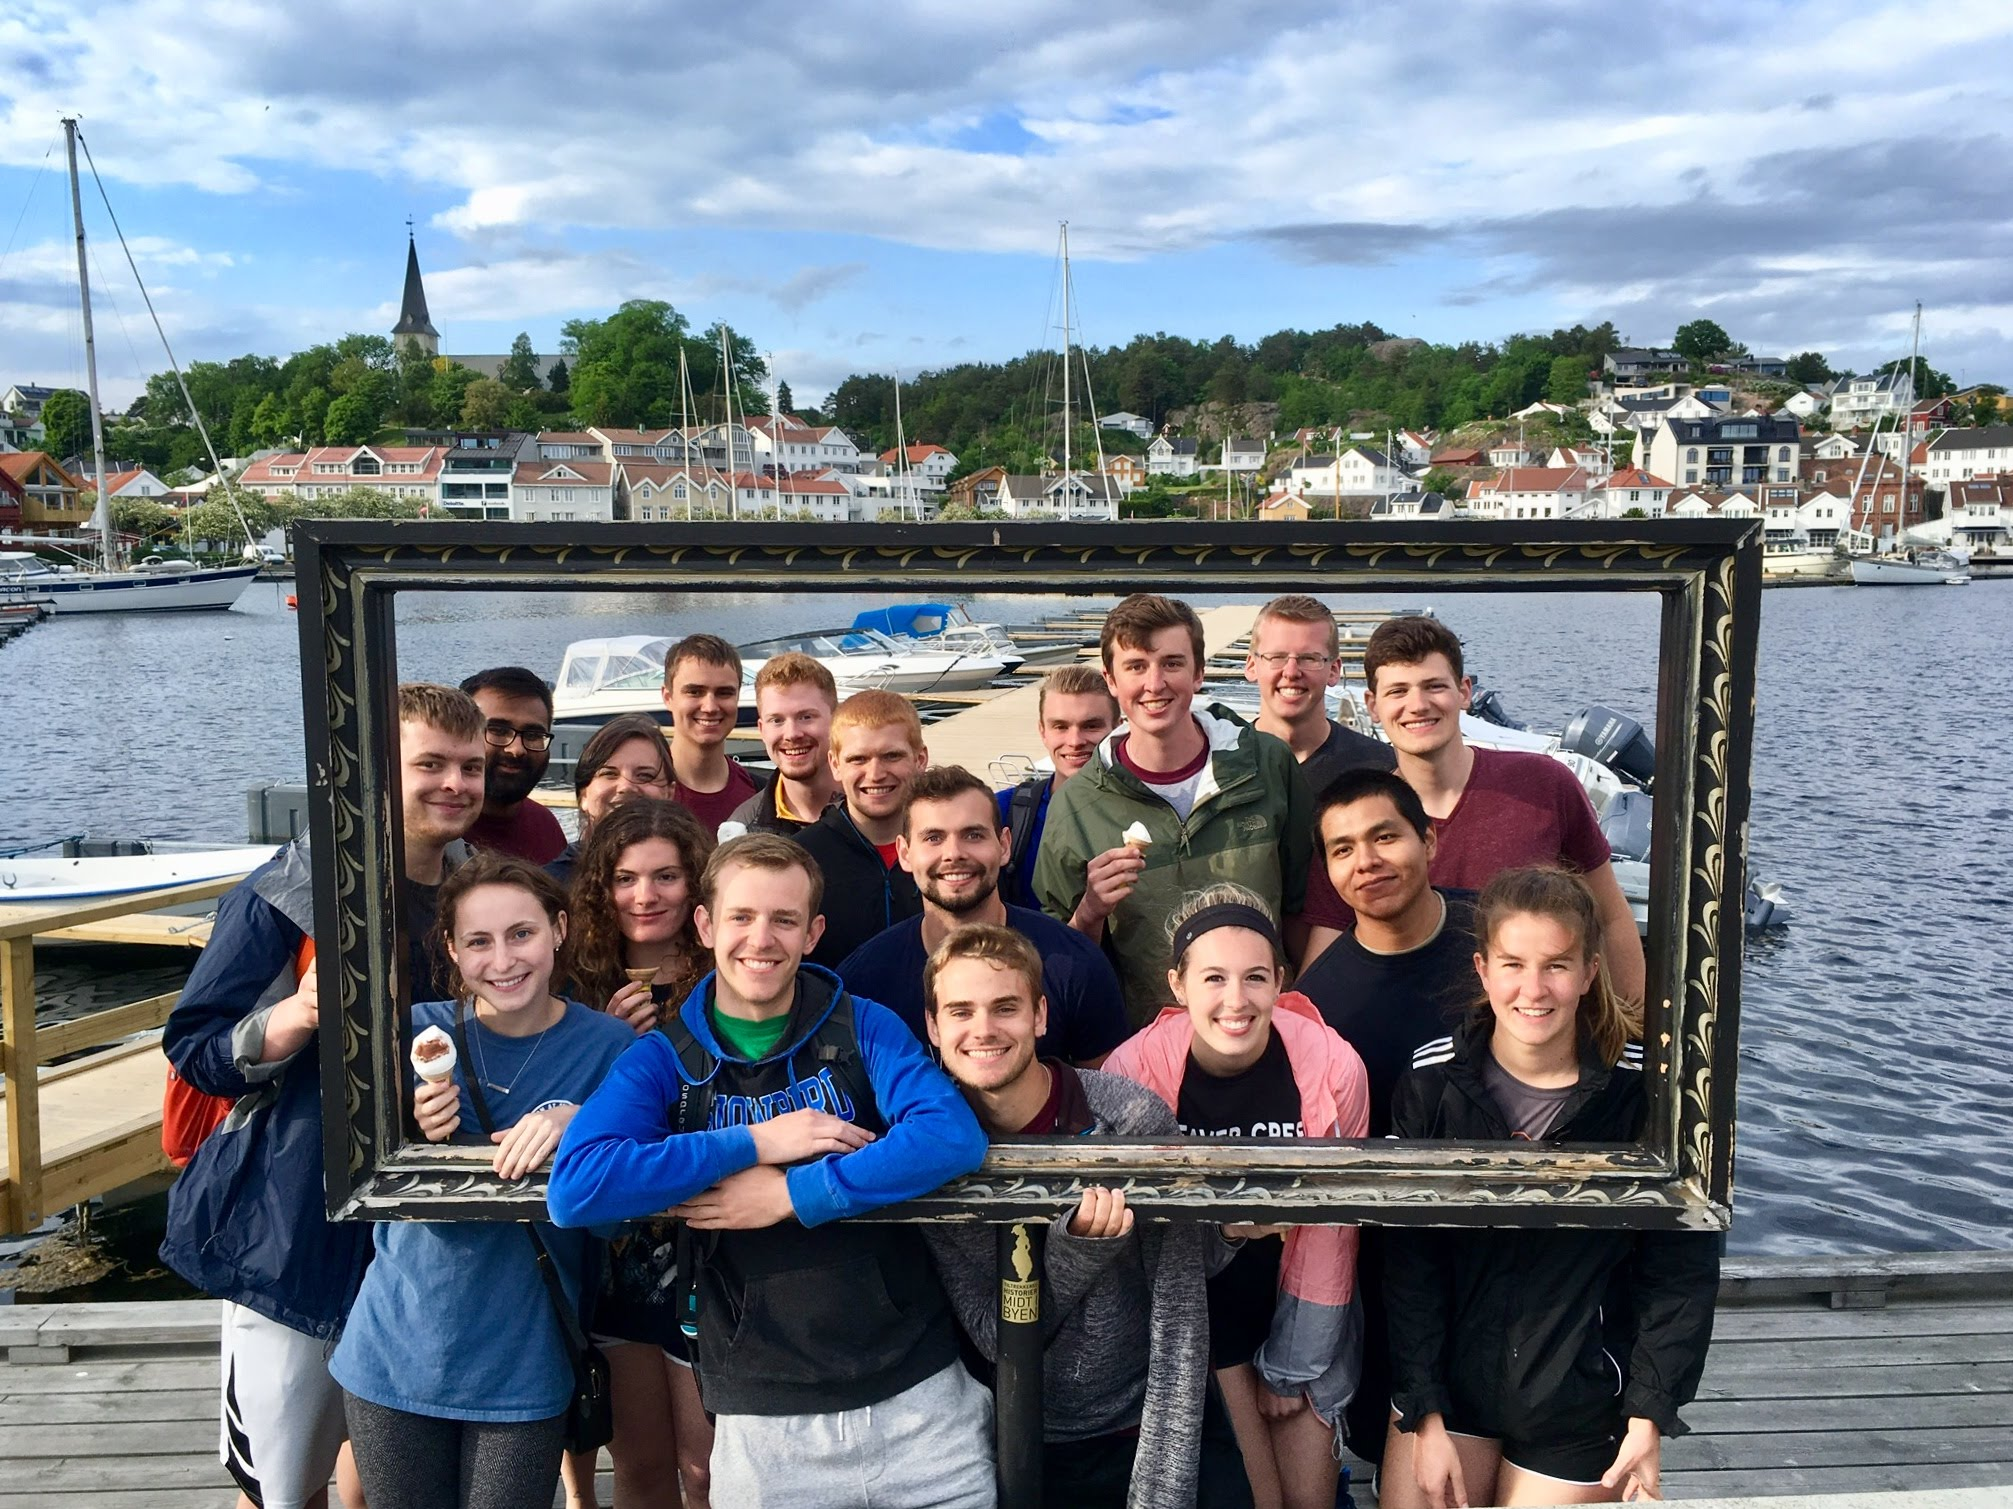 Group of students in front of water in Grimstad, Scandinavia